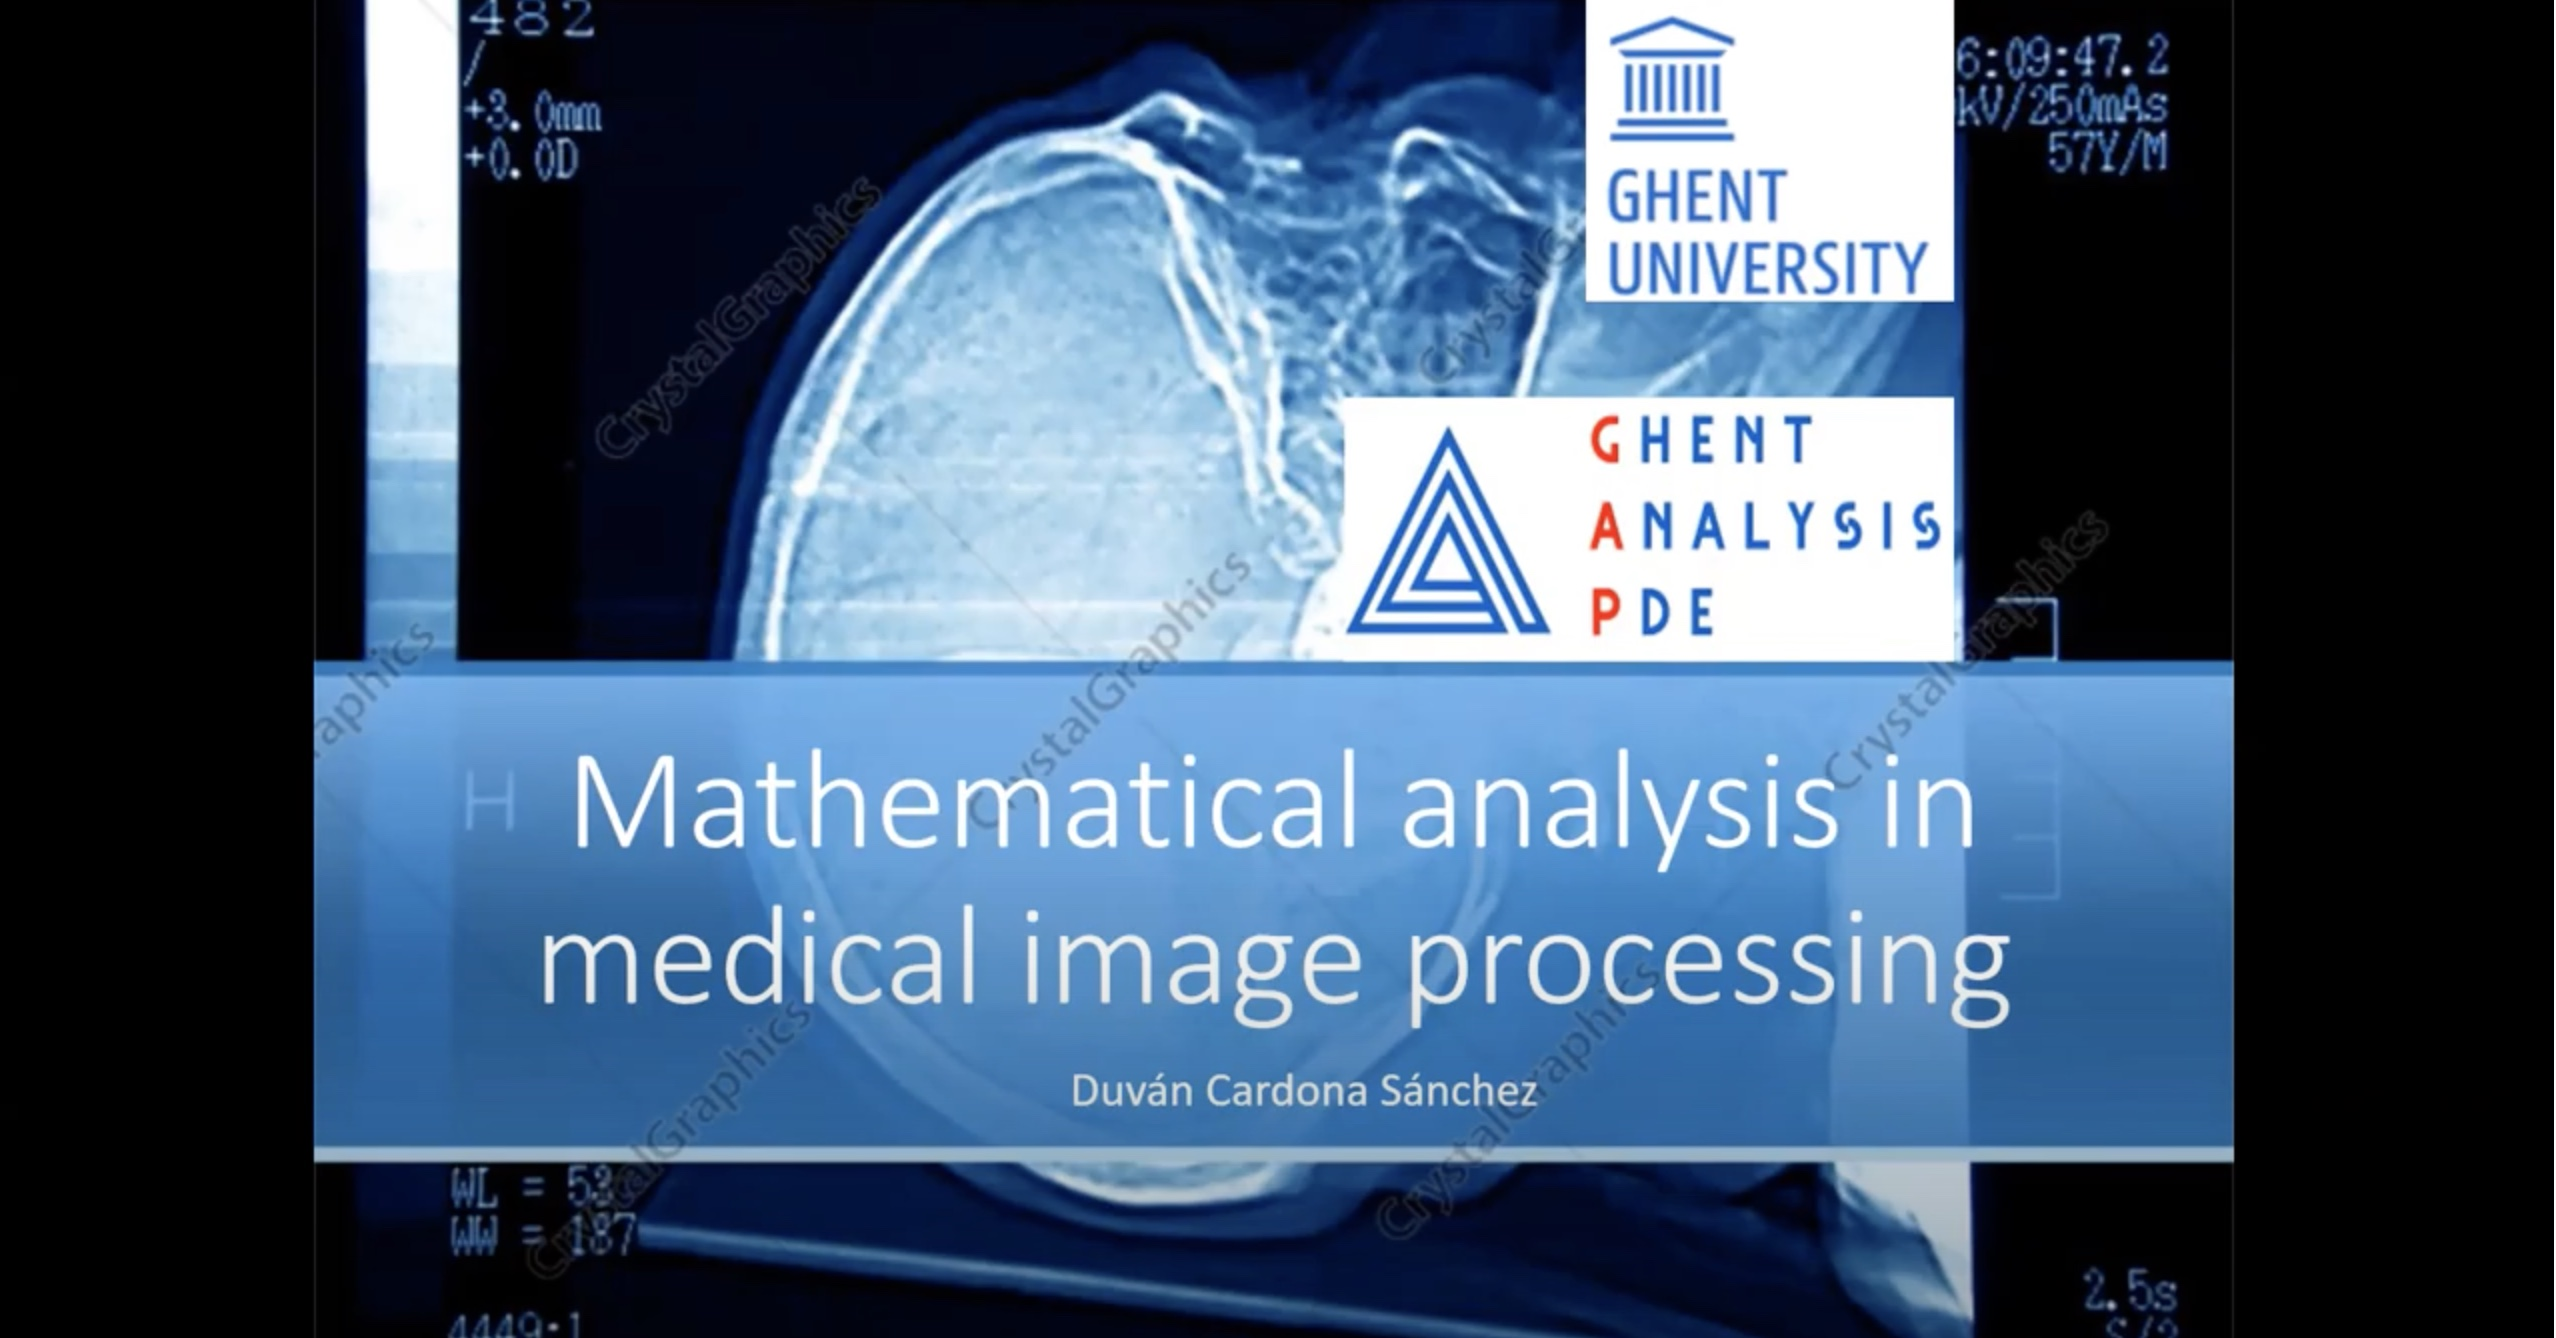 Image Processing and Mathematical Analysis